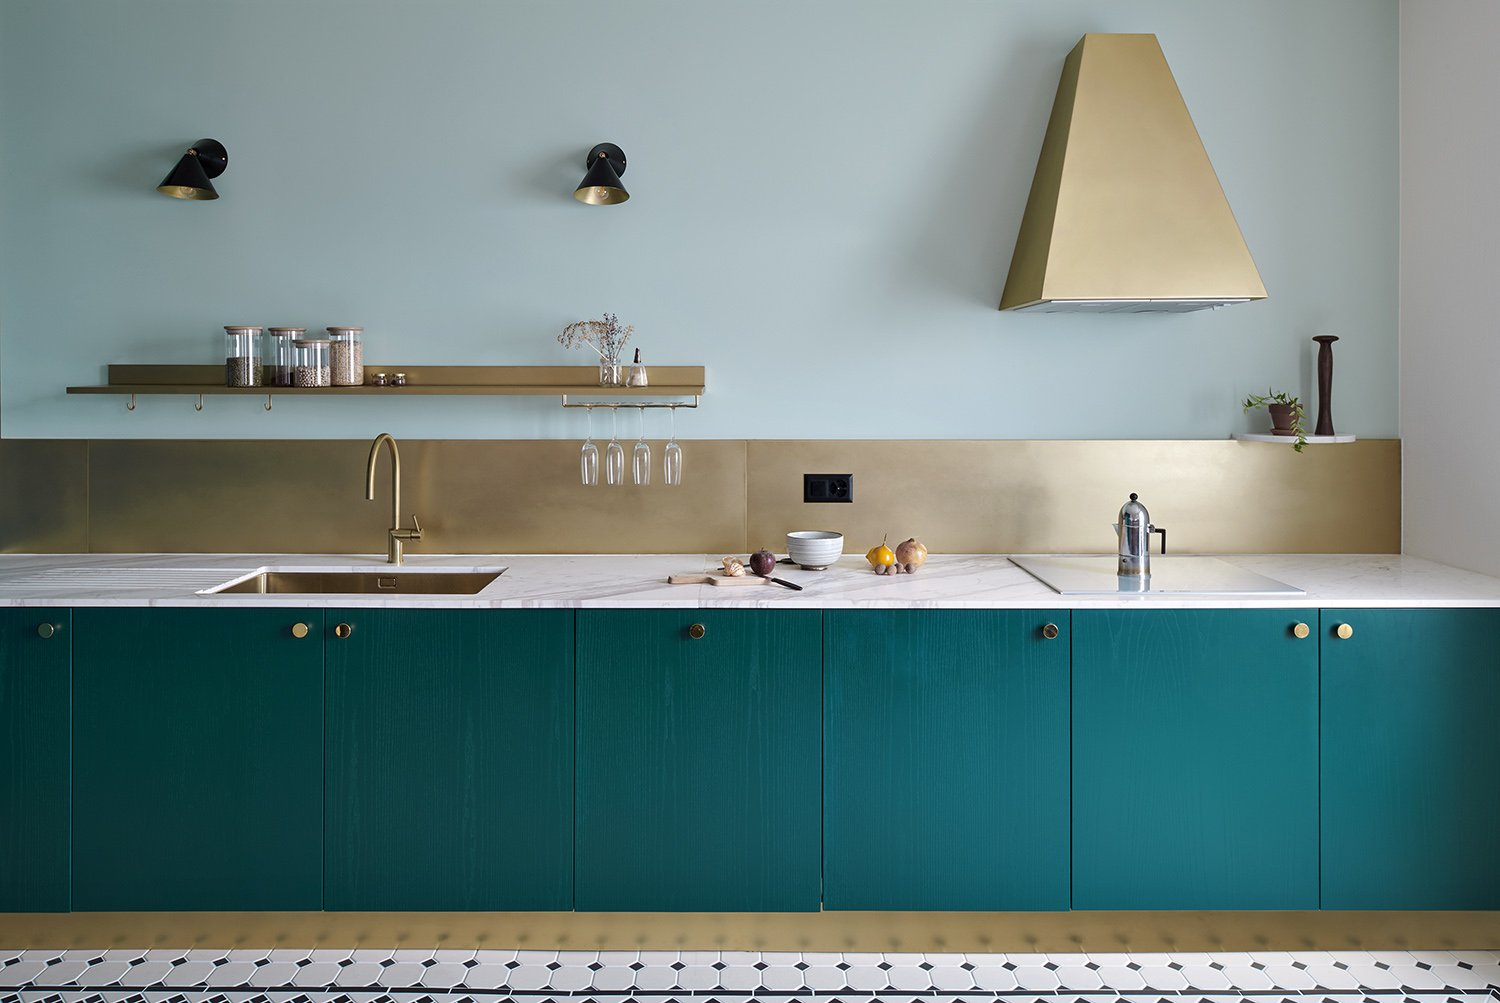 Brass and teal meet in a Swiss kitchen